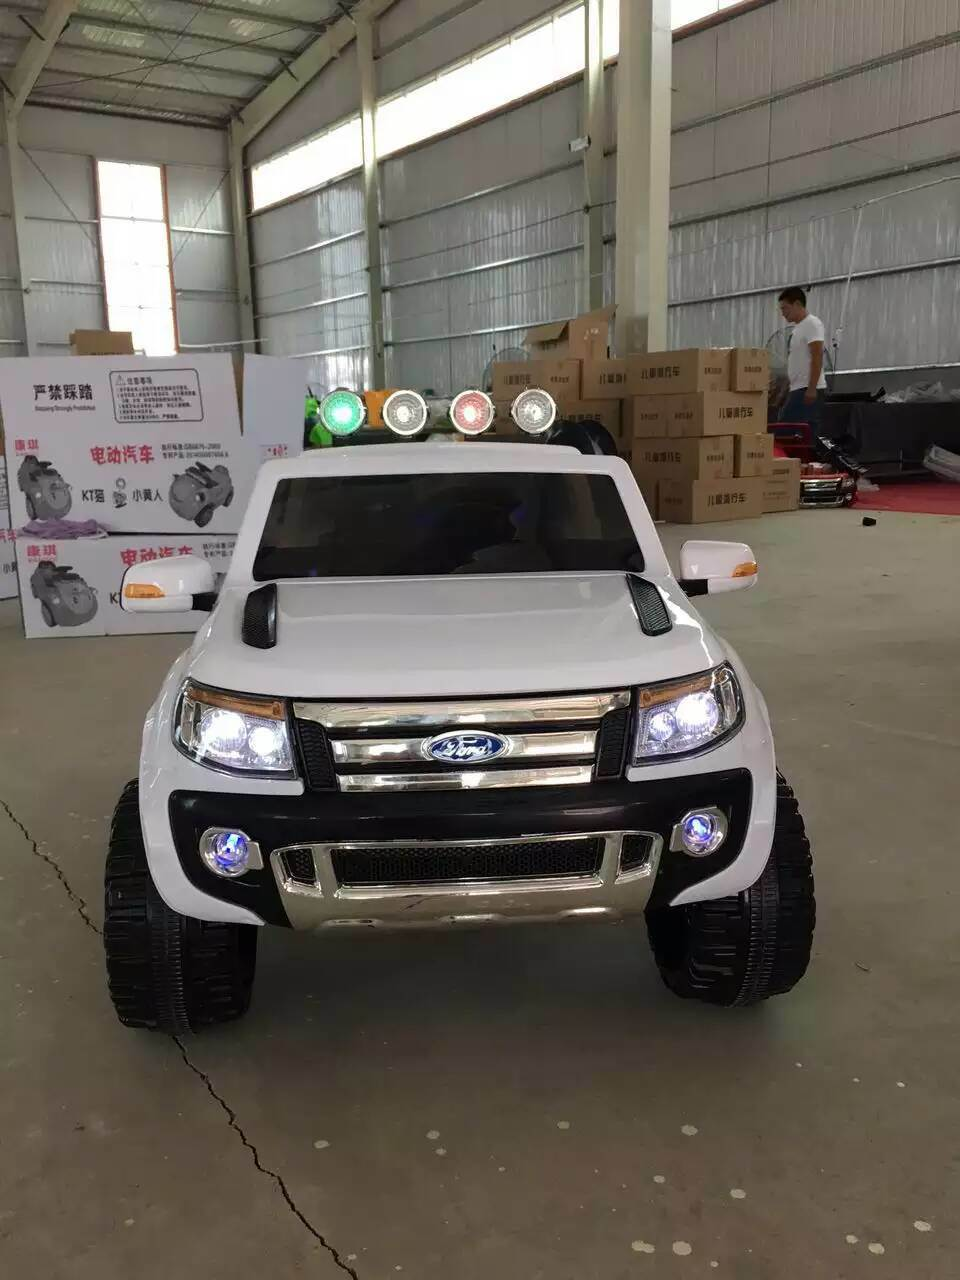 Stunning 2 Seater Big SUV Style 12V Battery Operated Car for Kids with Music Lights & China Stunning 2 Seater Big SUV Style 12V Battery Operated Car for ... Pezcame.Com